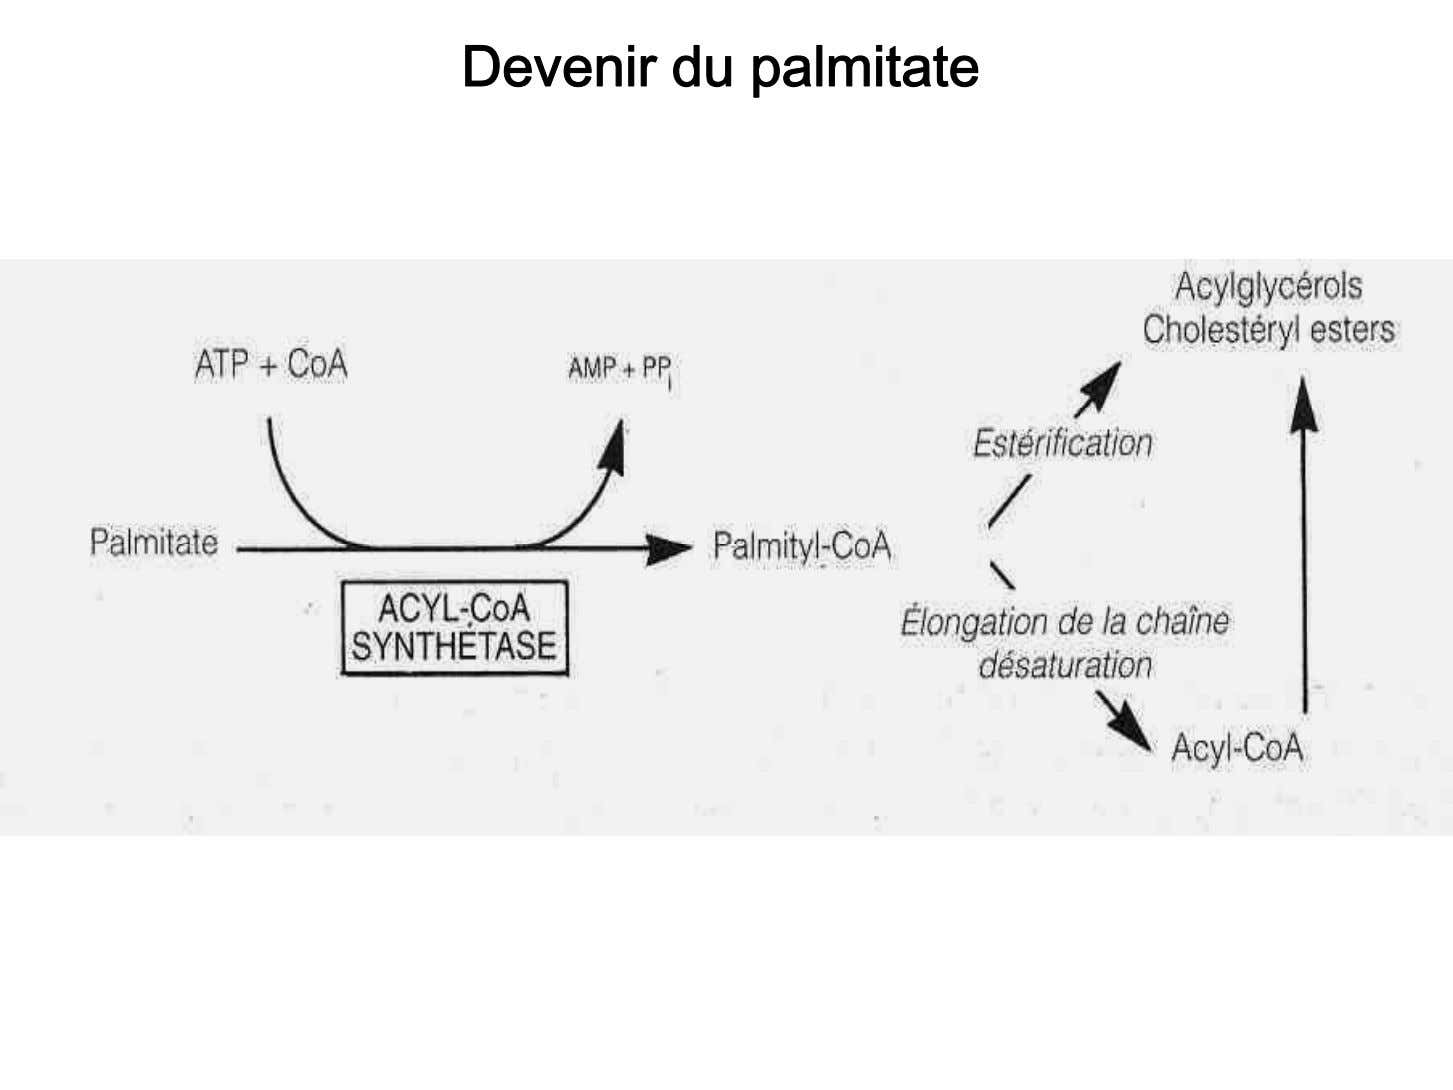 Devenir du palmitate